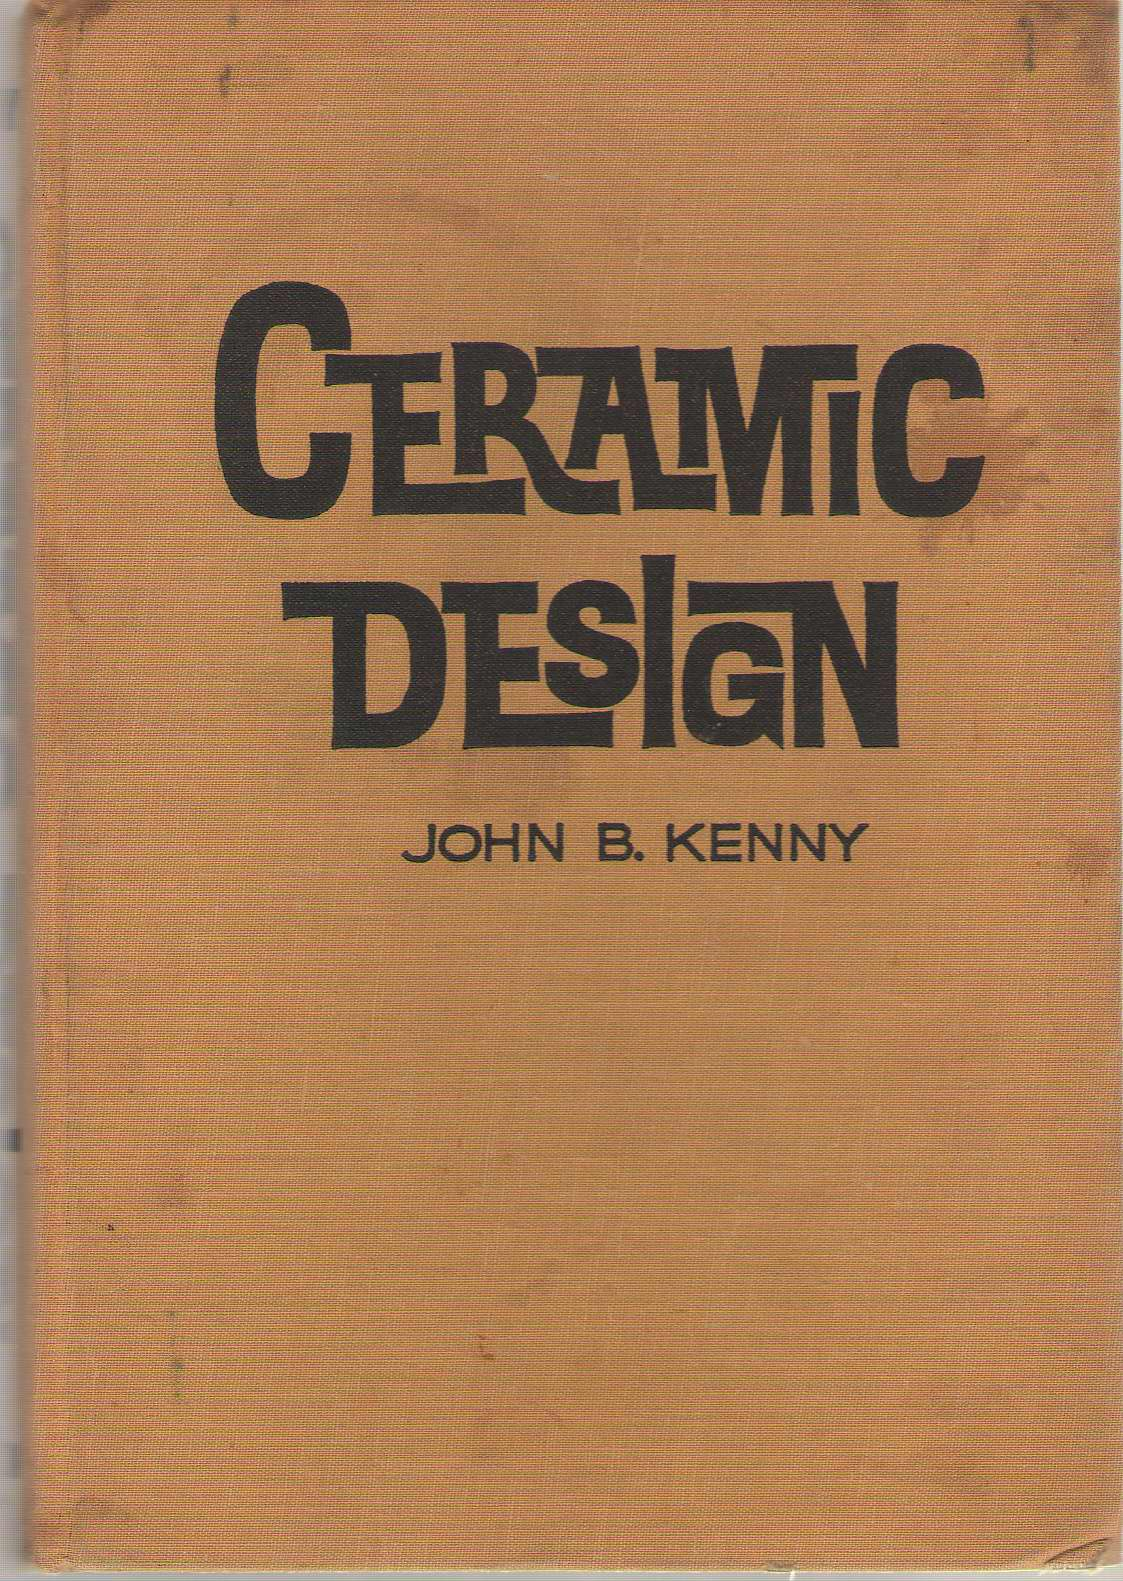 Image for Ceramic Design